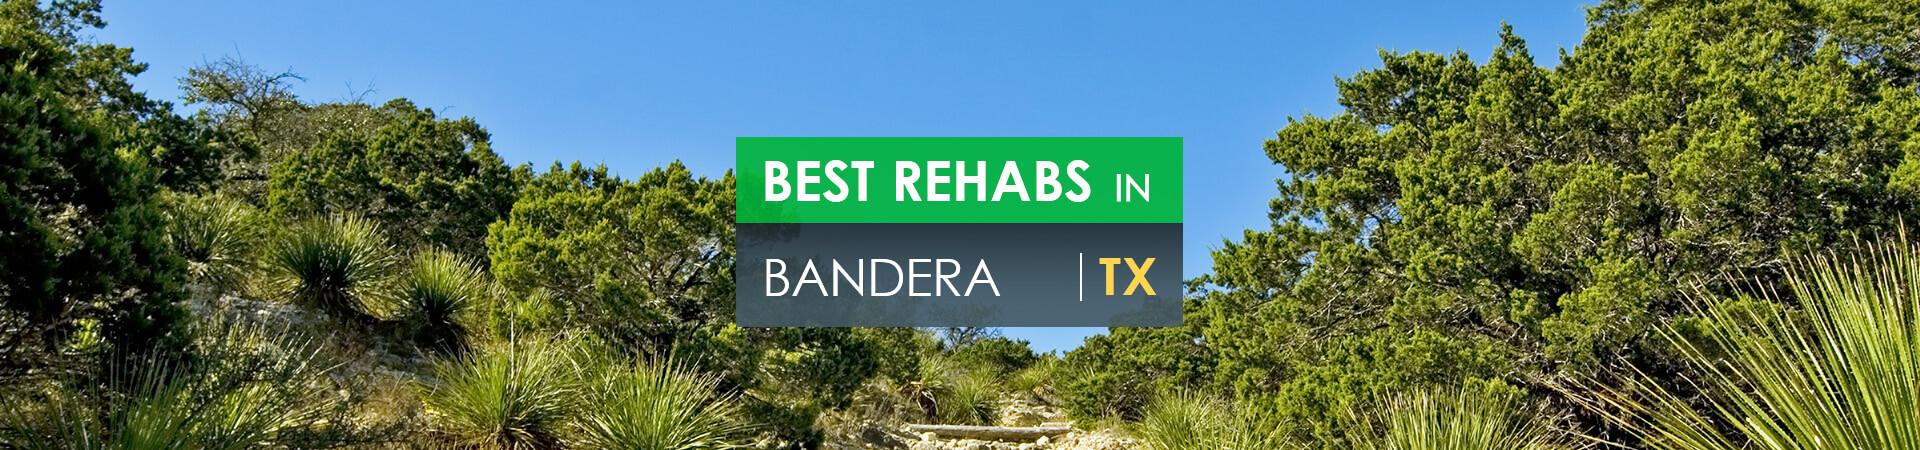 Best rehabs in Bandera, TX